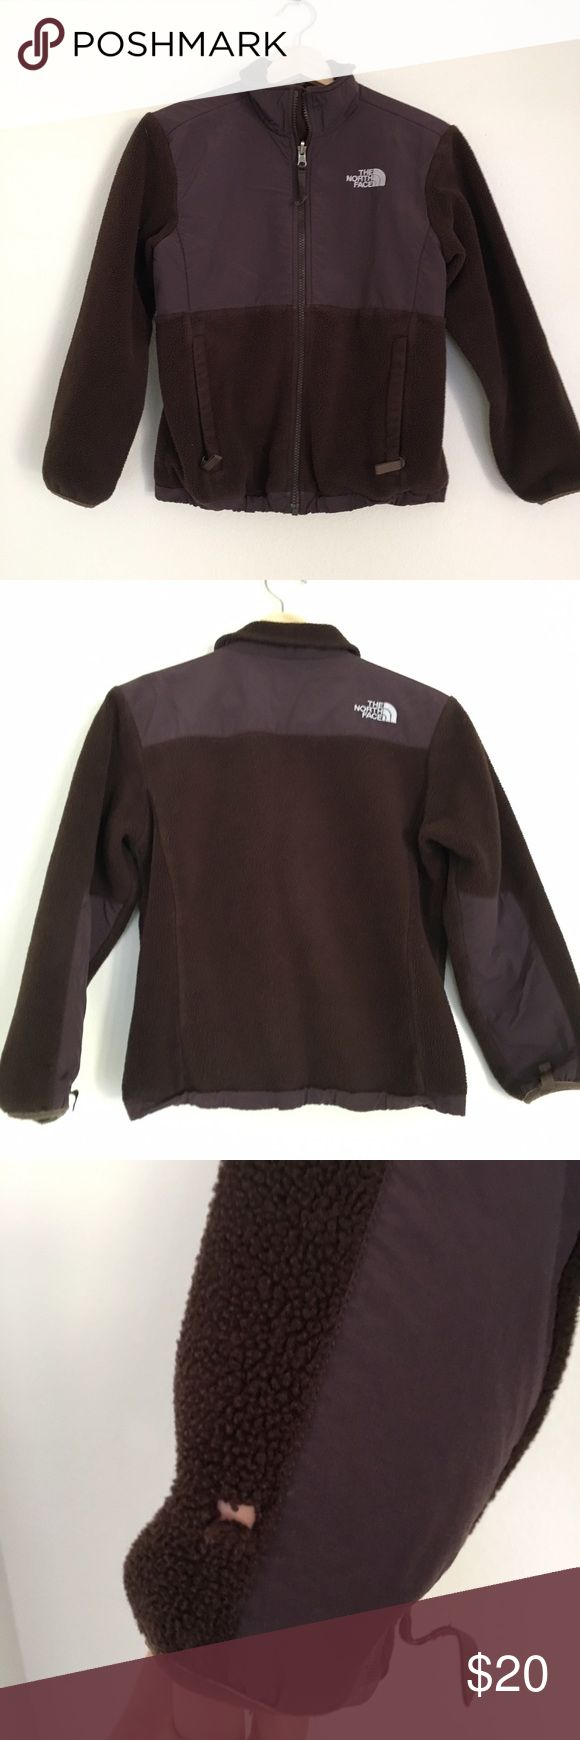 The North Face Girls Denali Zip Fleece Jacket Well loved girls North Face jacket. Polartec Recycled Zip Fleece- brown but almost has a hint of purple to it. Small hole in the back of one Sleeve and small hole in lining of pockets. A great warm jacket perfect for camping! Polyester nylon blend. Measures 18 in at armpits, 20.5 in length, 18in Sleeve. The North Face Shirts & Tops Sweatshirts & Hoodies